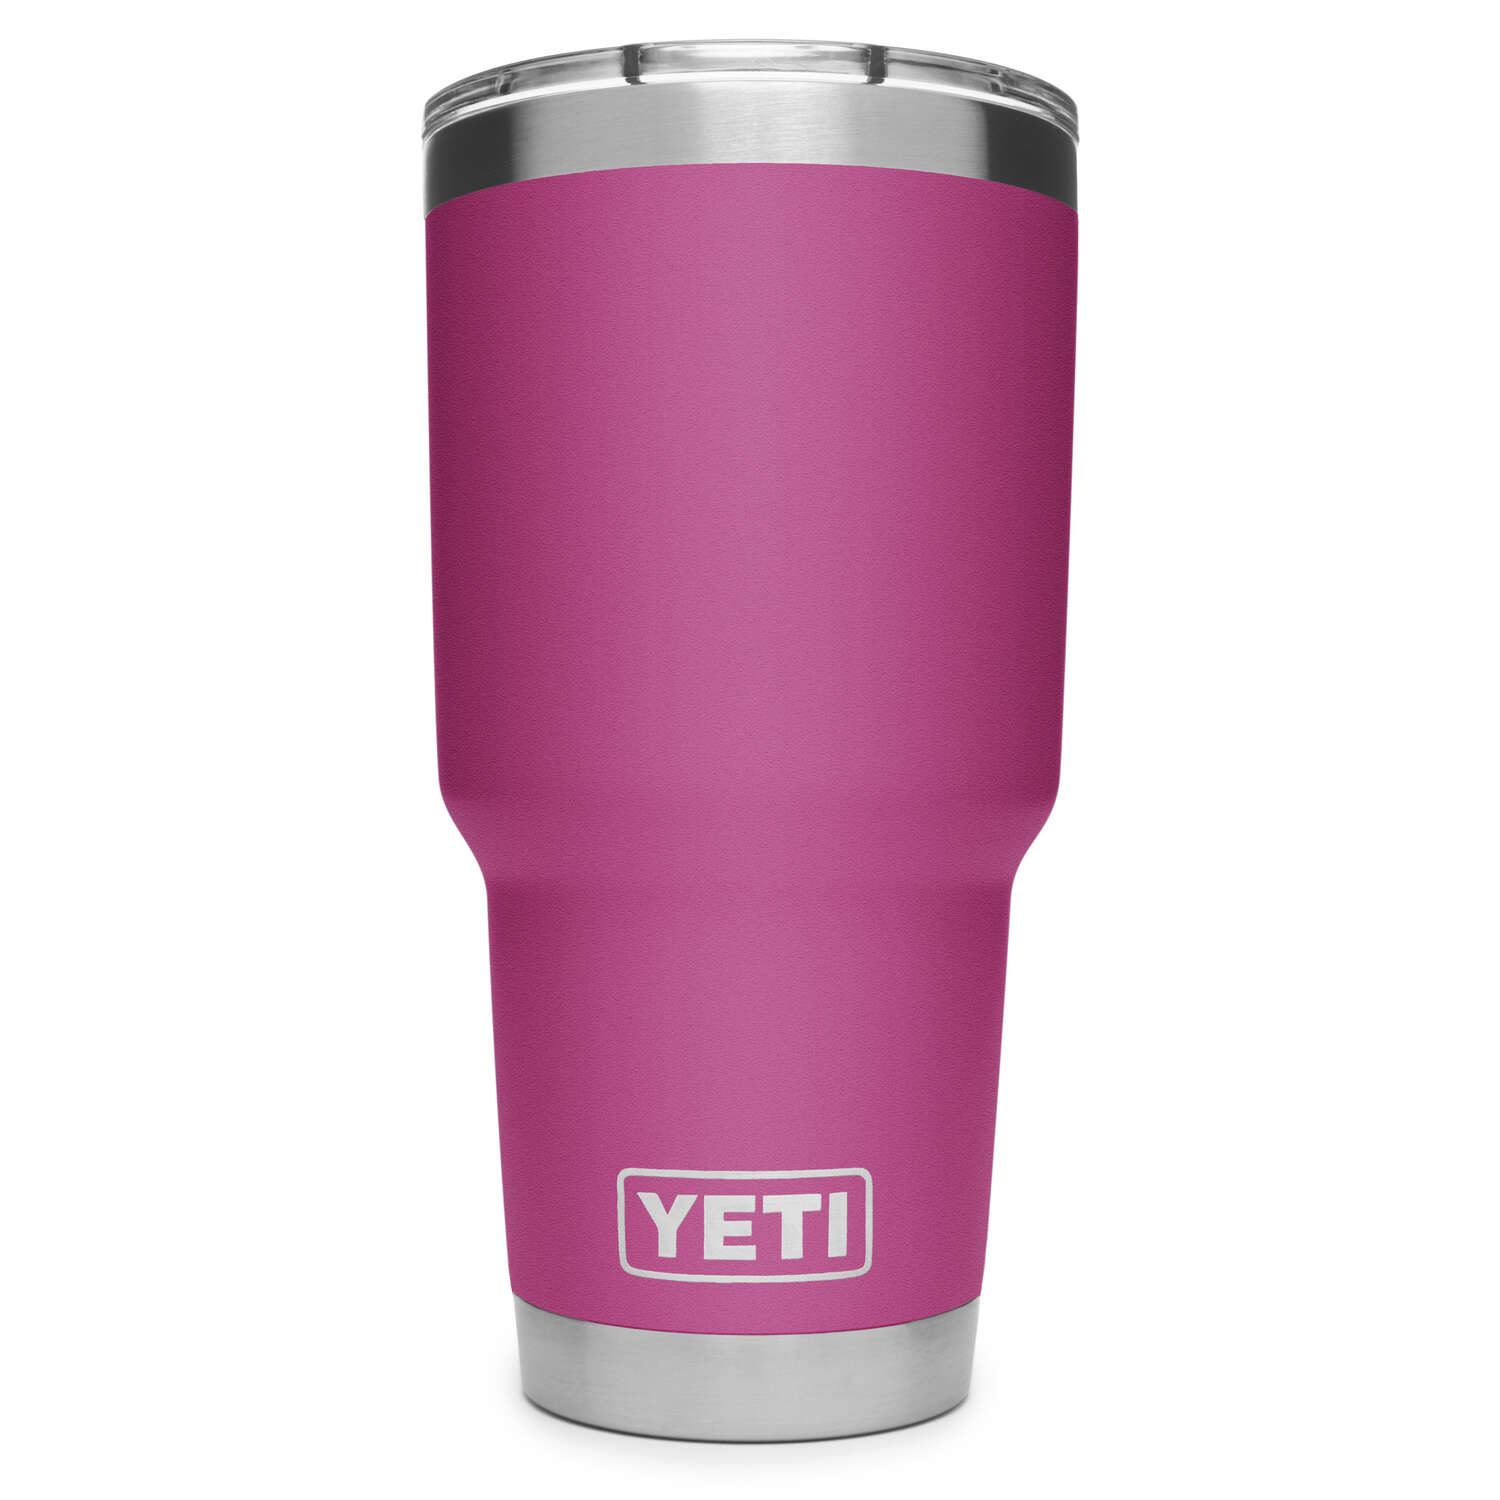 YETI Rambler 30 oz. Prickly Pear Pink BPA Free Vacuum Insulated Tumbler